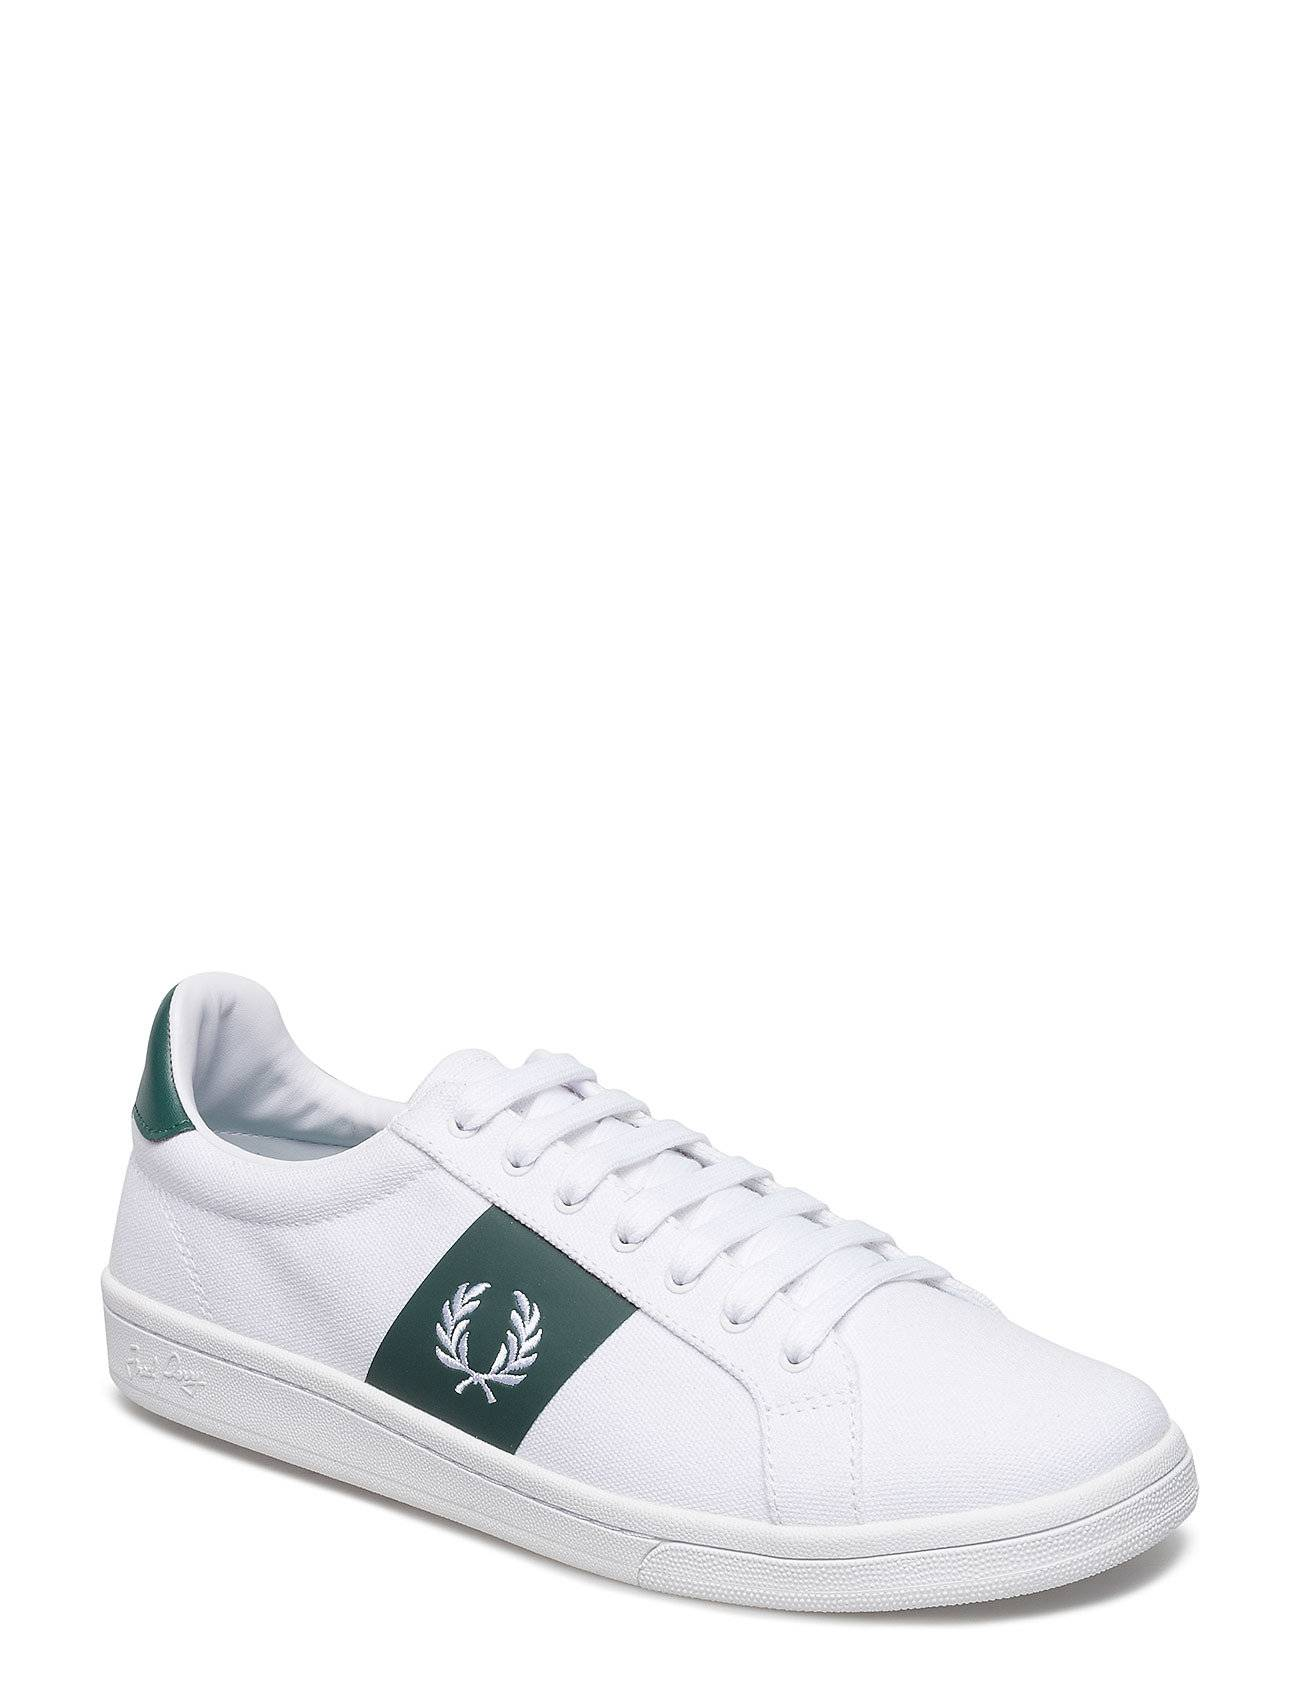 Fred Perry B721 Canvas